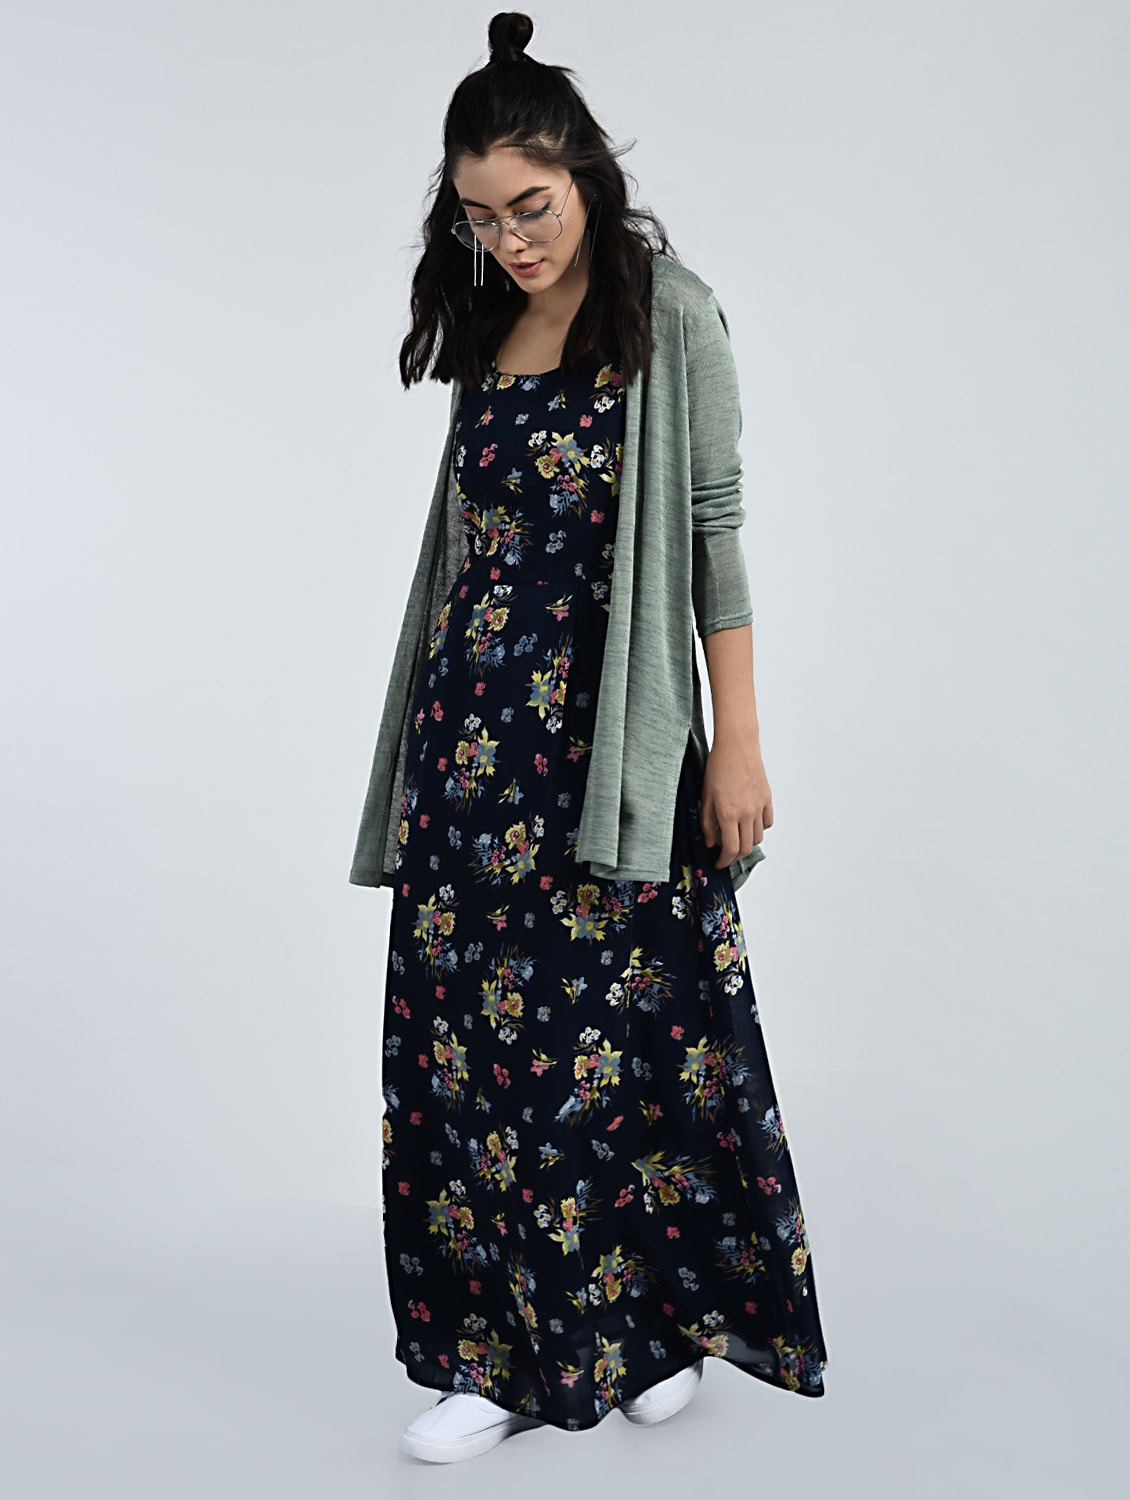 a1eaa4970bd67 Buy Floral Sleeveless Maxi Dress for Women from A K Fashion for ...